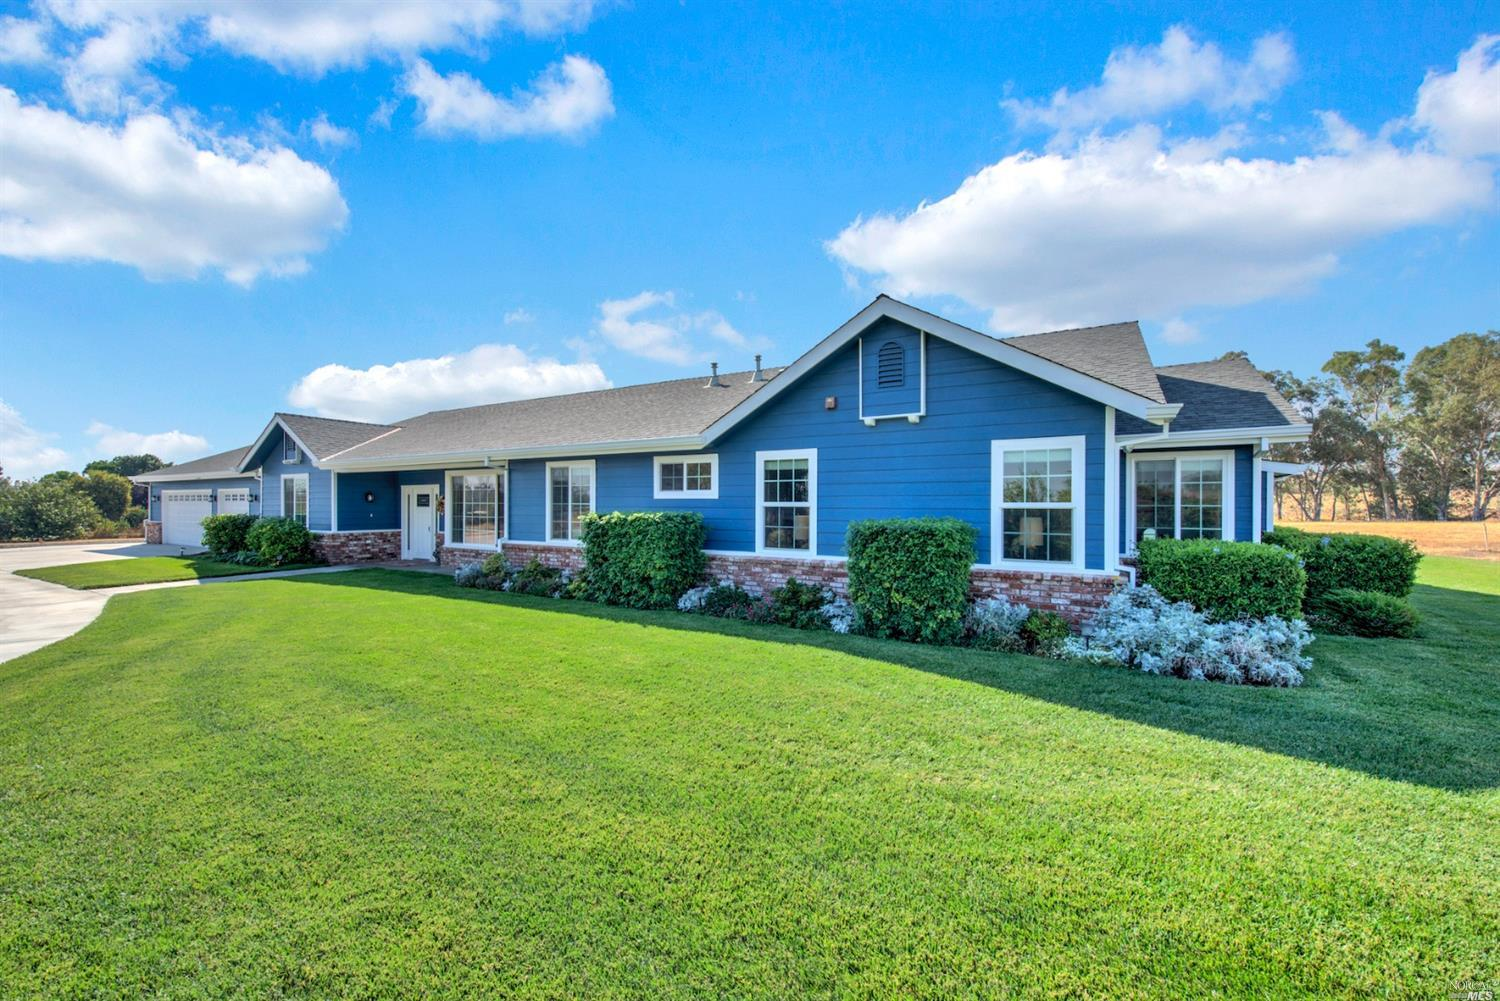 4338 Standfill Ln, Vacaville, CA, 95688